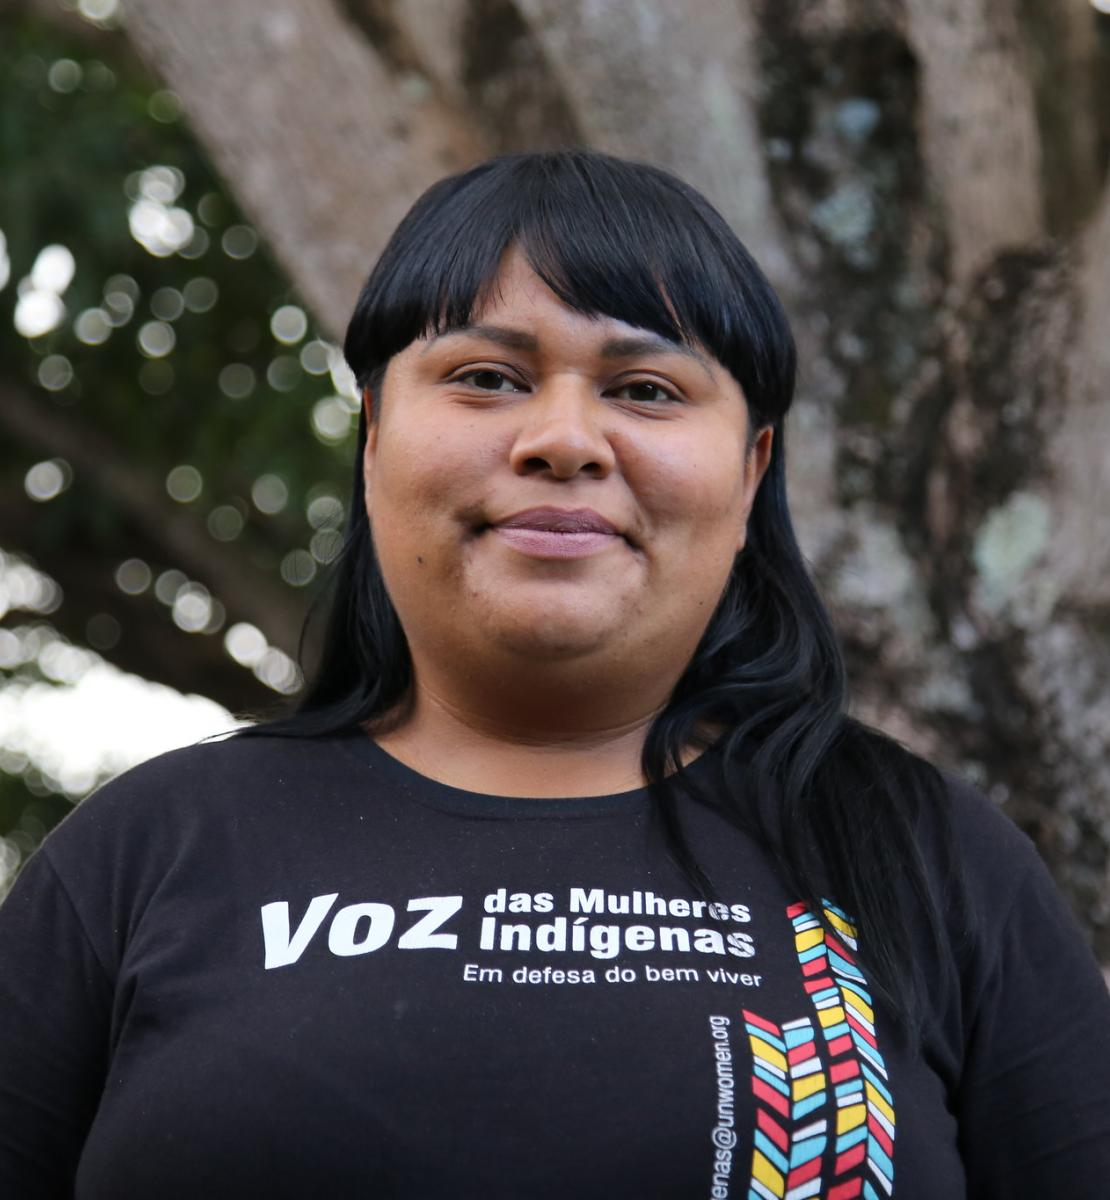 An indigenous woman smiles proudly wearing a t-shirt that reads Voice of the Indigenous women